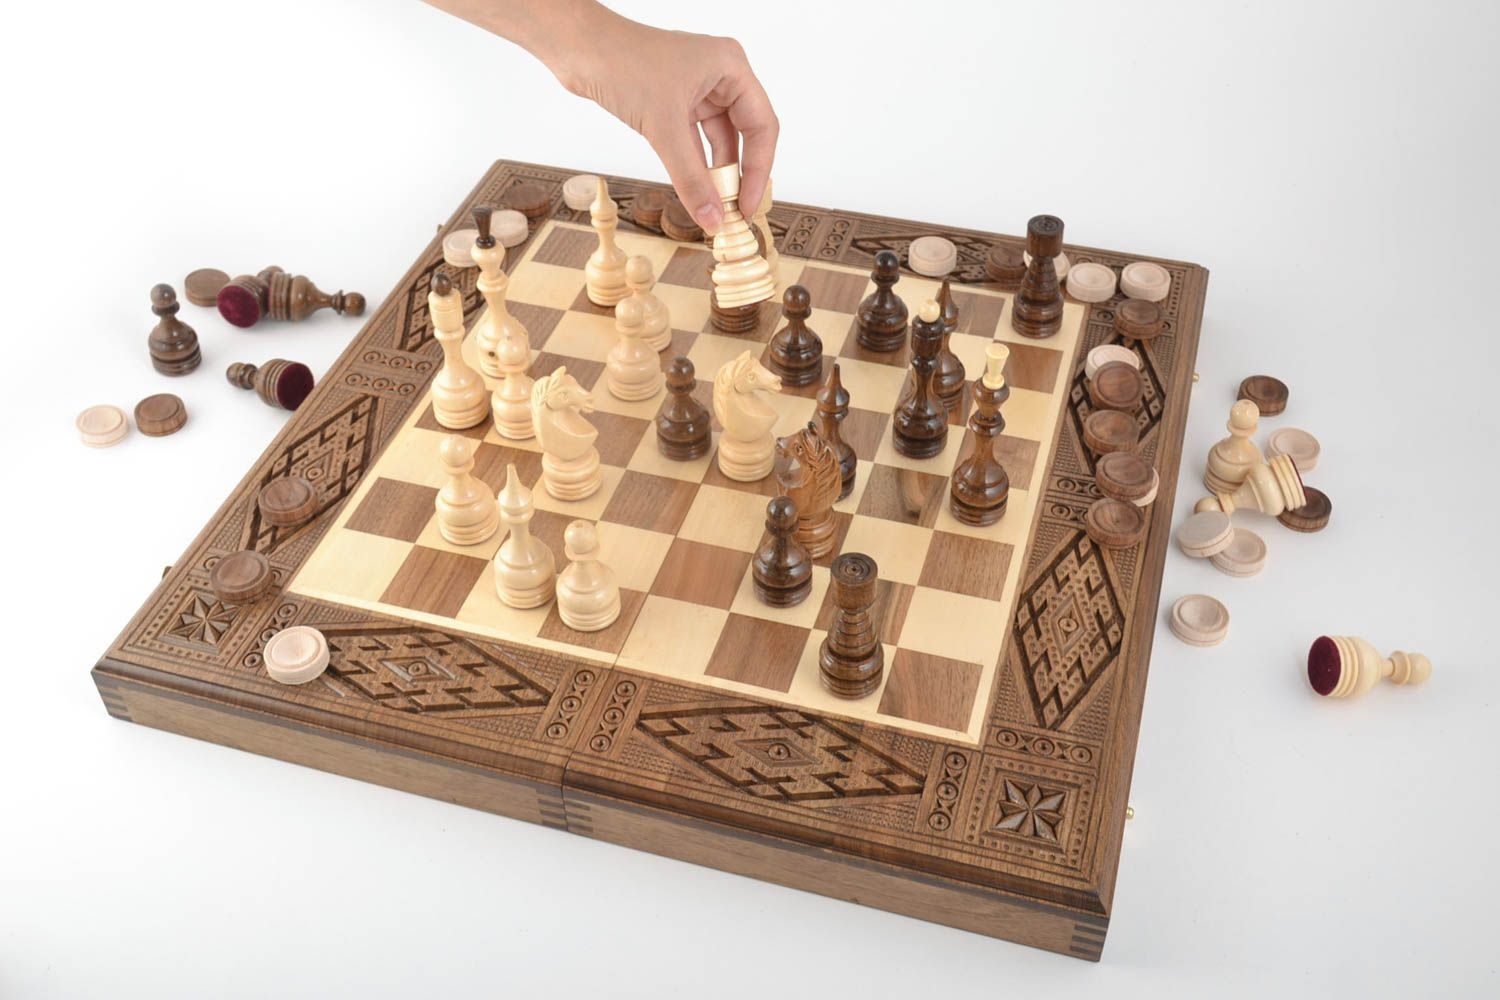 Handmade board games wooden chessboard chess pieces best gifts for him photo 5